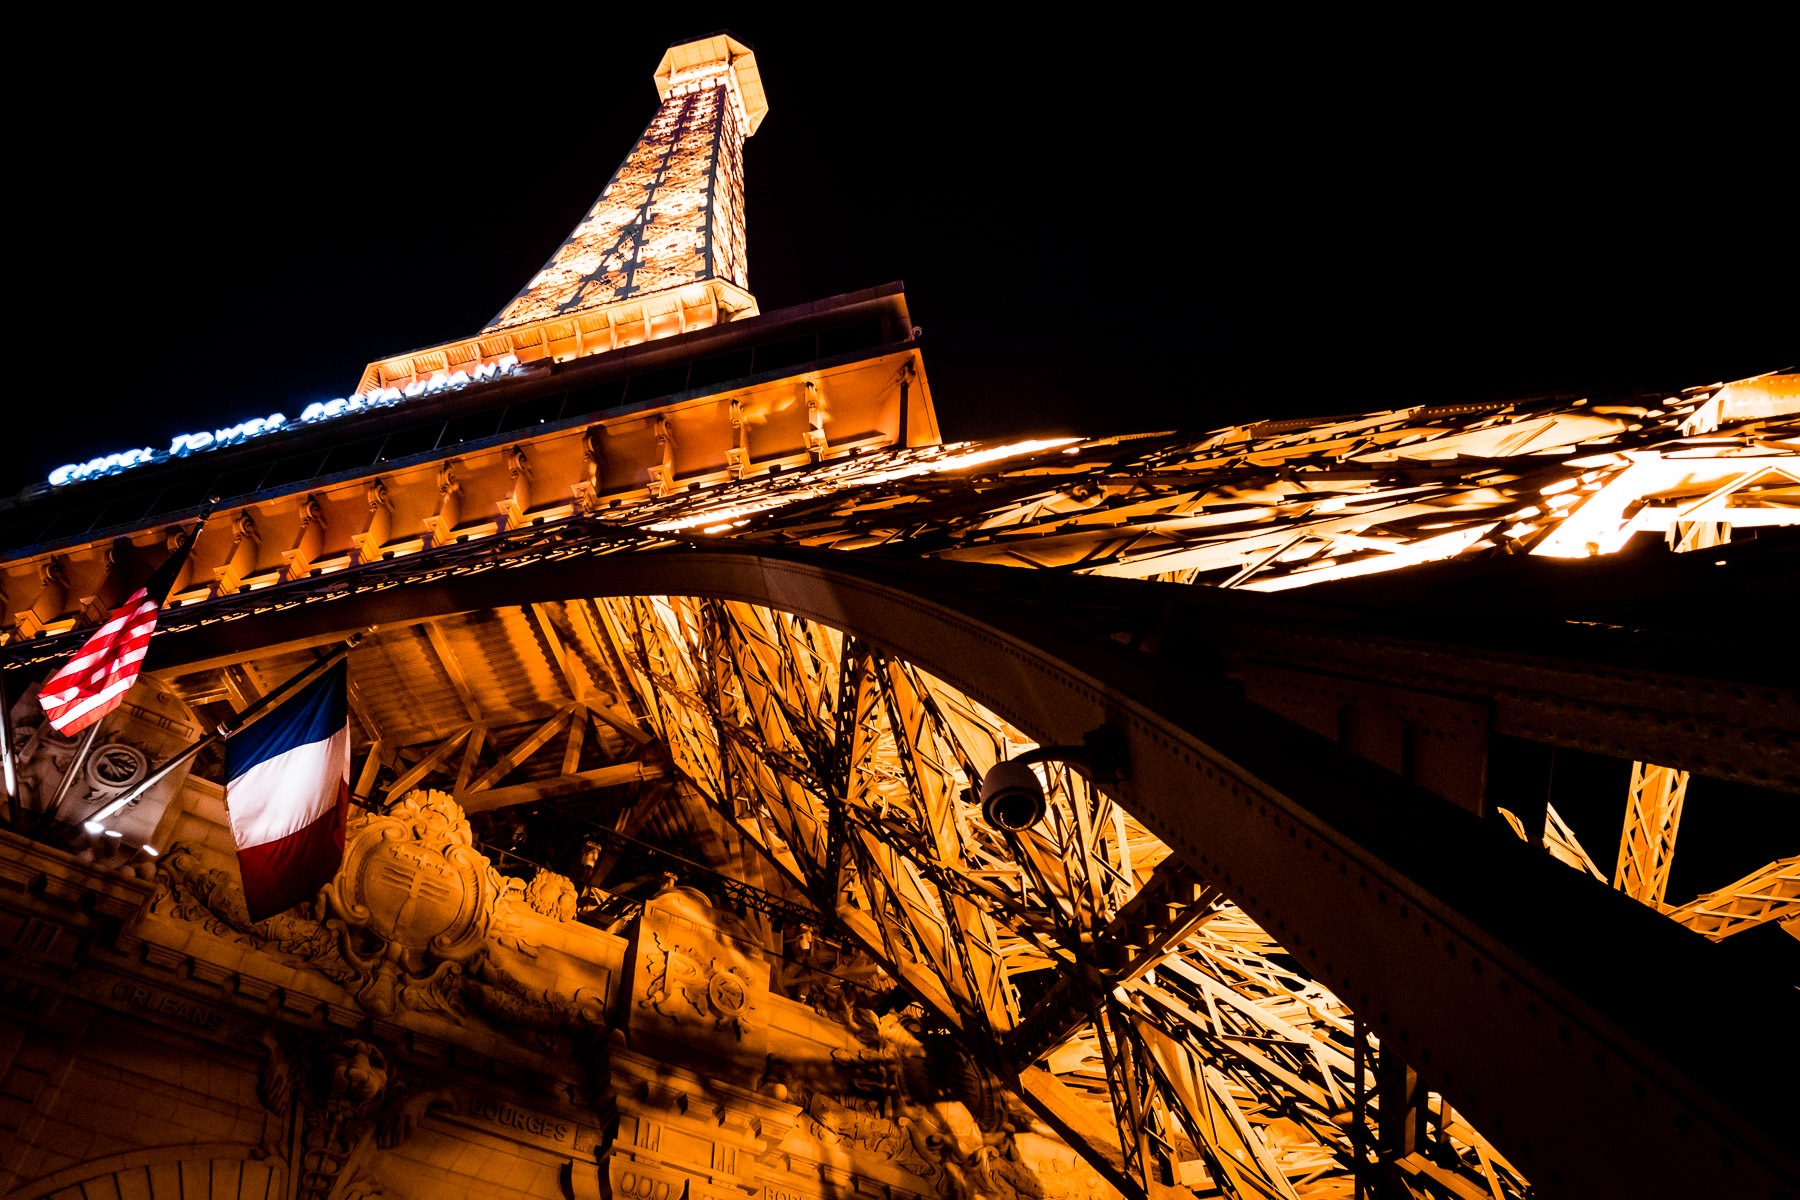 The replica Eiffel Tower at Paris Las Vegas rises into the night sky over Nevada.